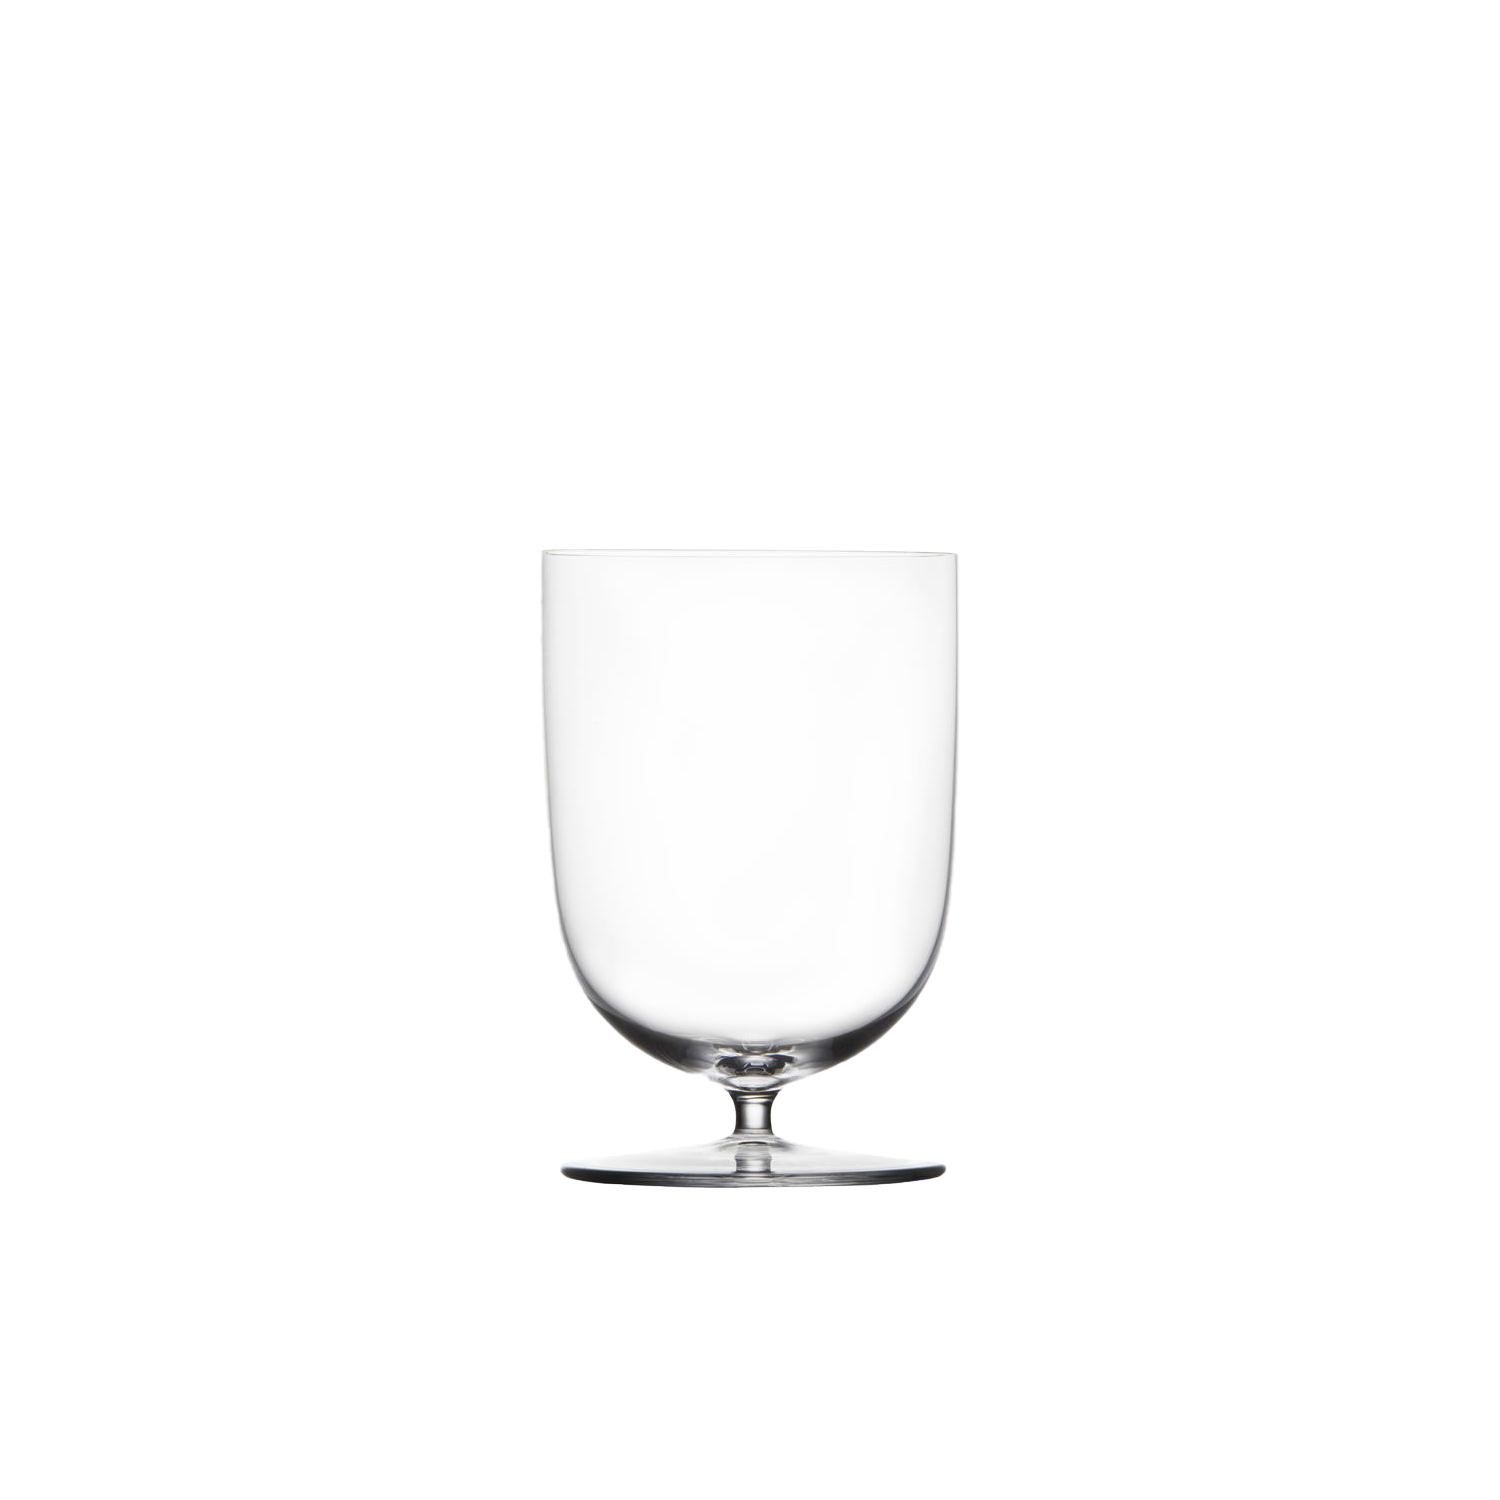 Drinking Set No.280 Wiener Gemischter Satz Water Glass - Set of 6 - POLKA a young and sucessful design studio from Austria wanted to create a simple Lobmeyr series to be used for personal everyday rituals. Each glass radiates elegance and grace of mouth-blown Lobmeyr crystal and each of the small series has its own story. So do the oenological correct wine glasses or the traditional champagne cup, standing for ebullient pleasure. | Matter of Stuff